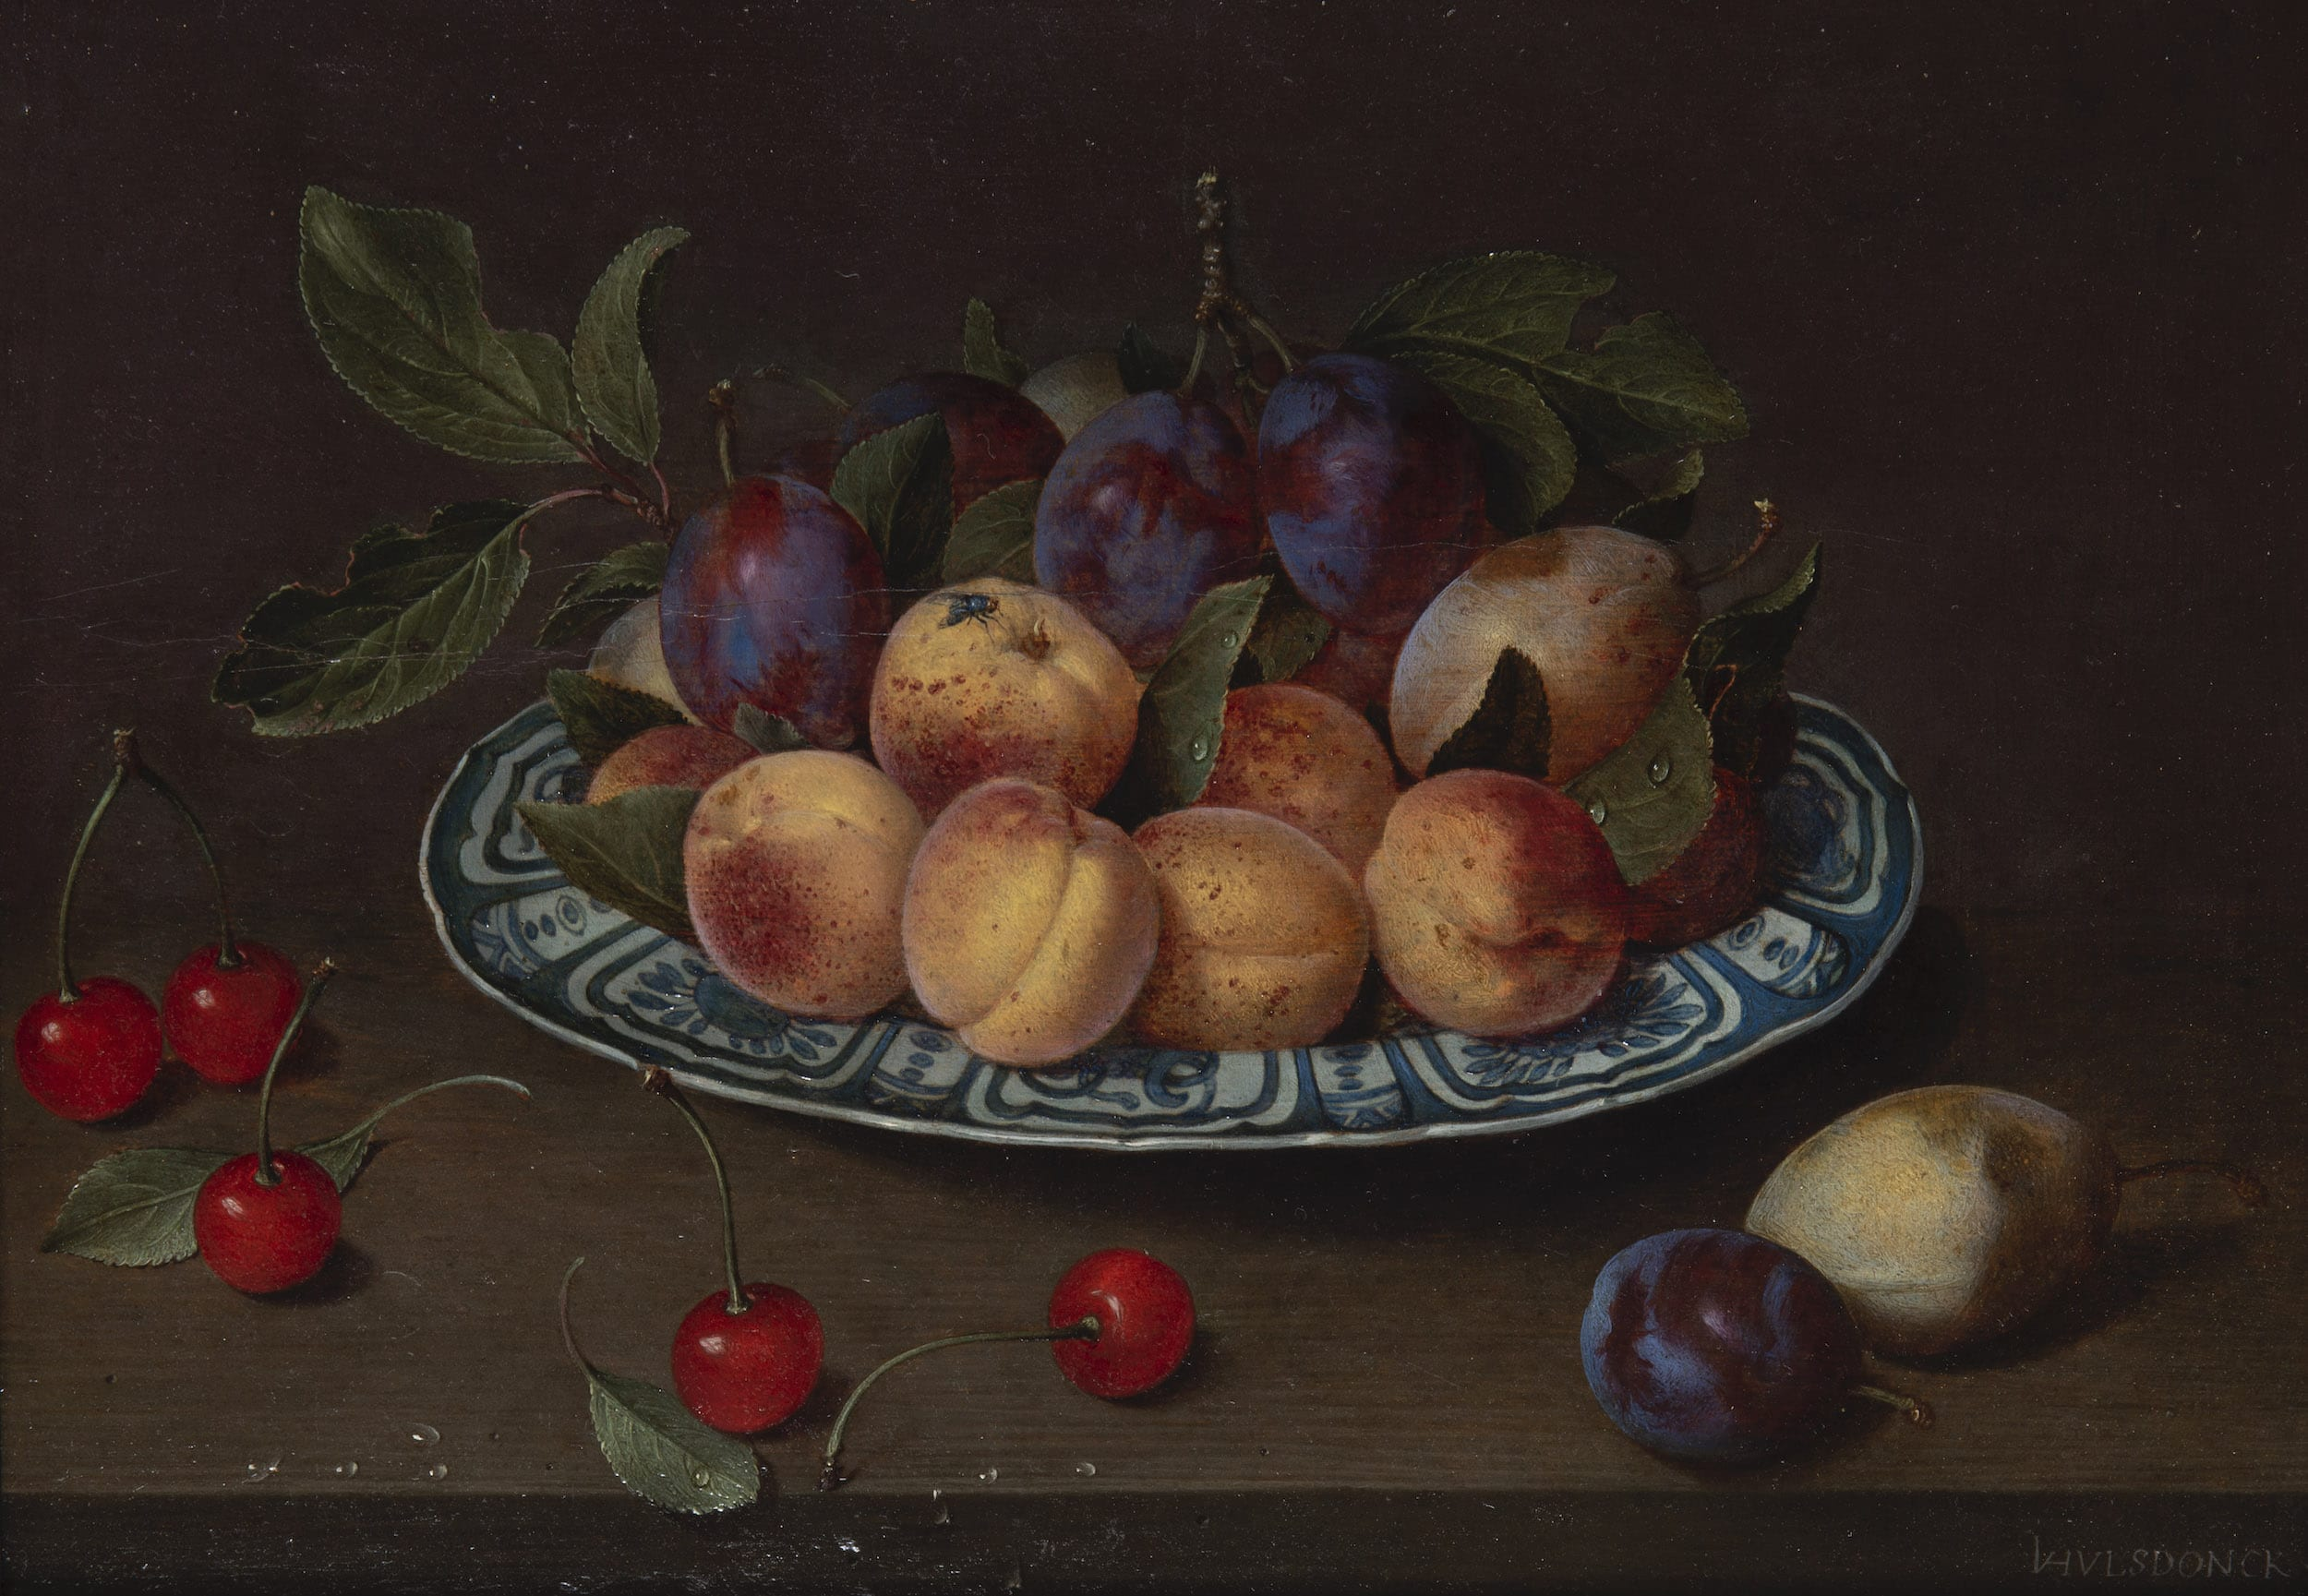 Platter of plums, peaches and pears with cherries on a table